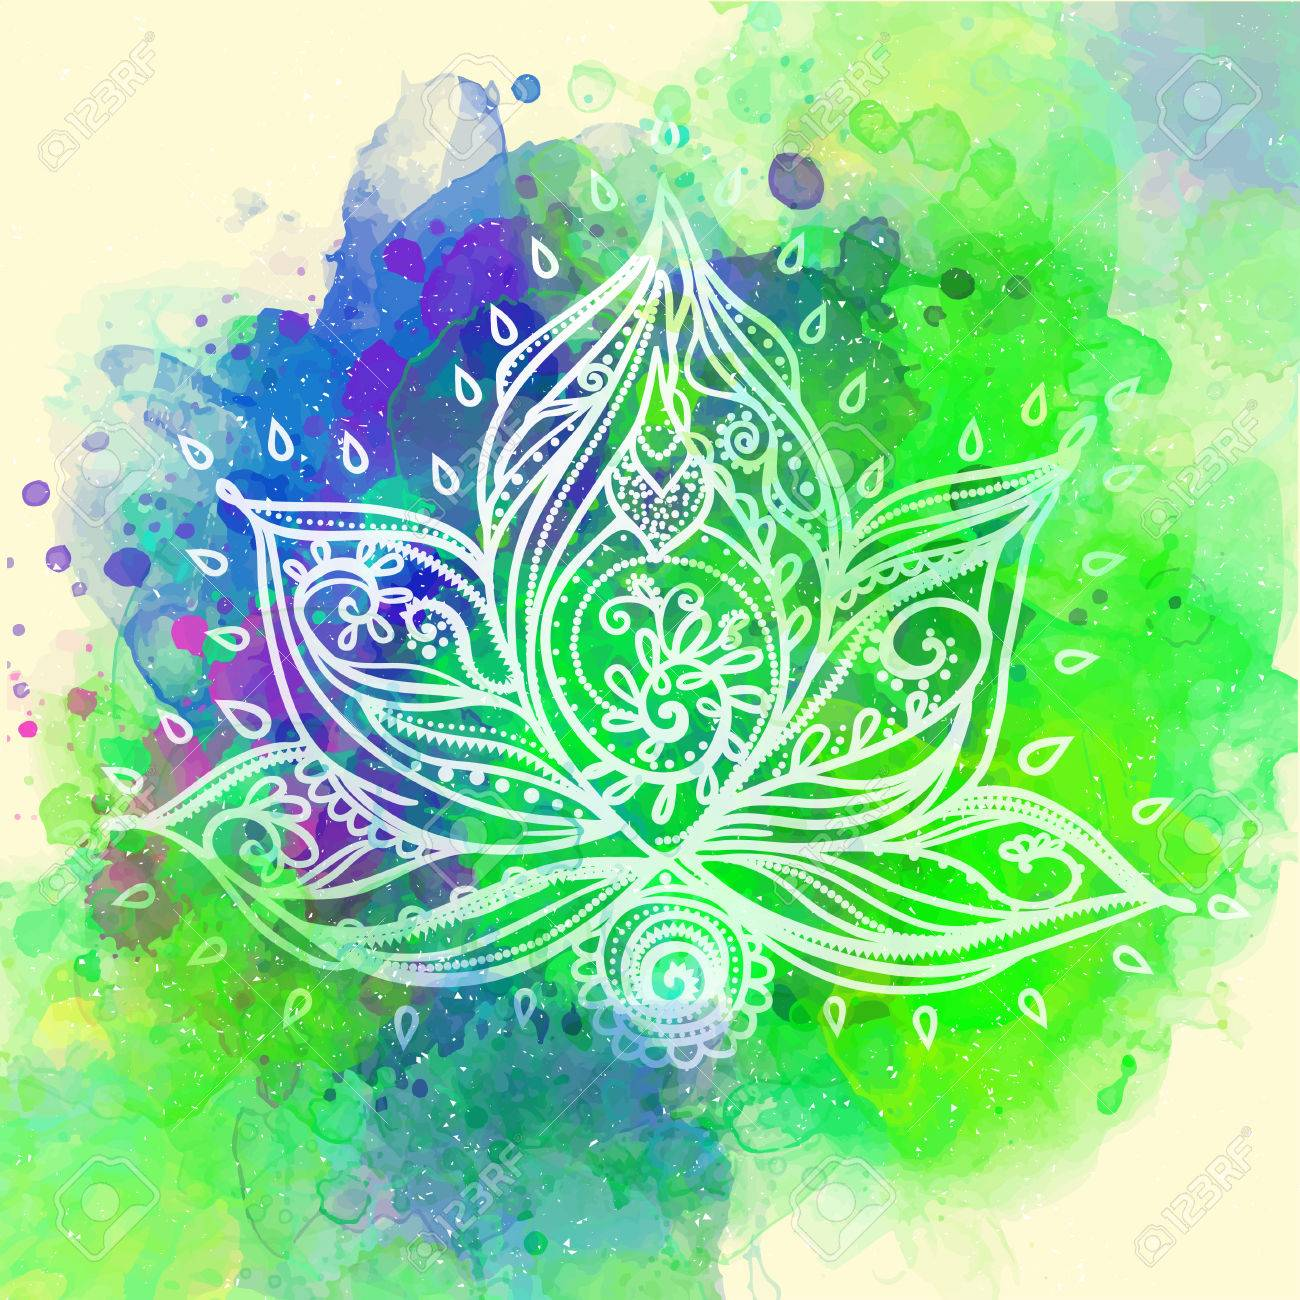 Ornamental Boho Style Lotus Flower Geometric Element Hand DrawnCards For The Design And